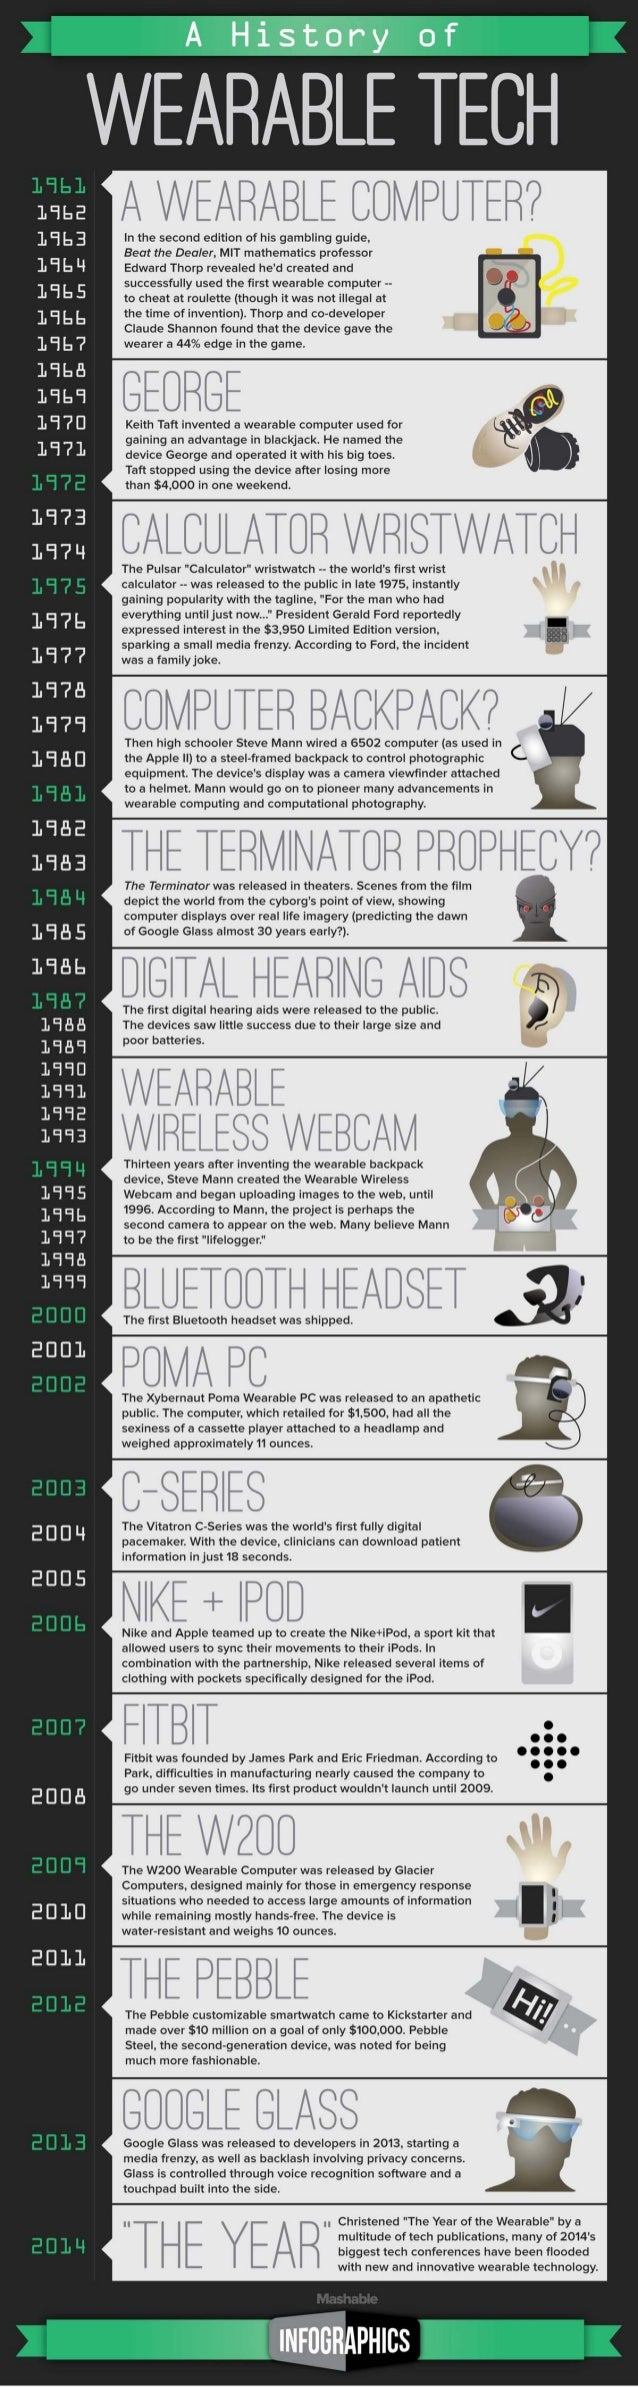 A History Of Wearable Tech